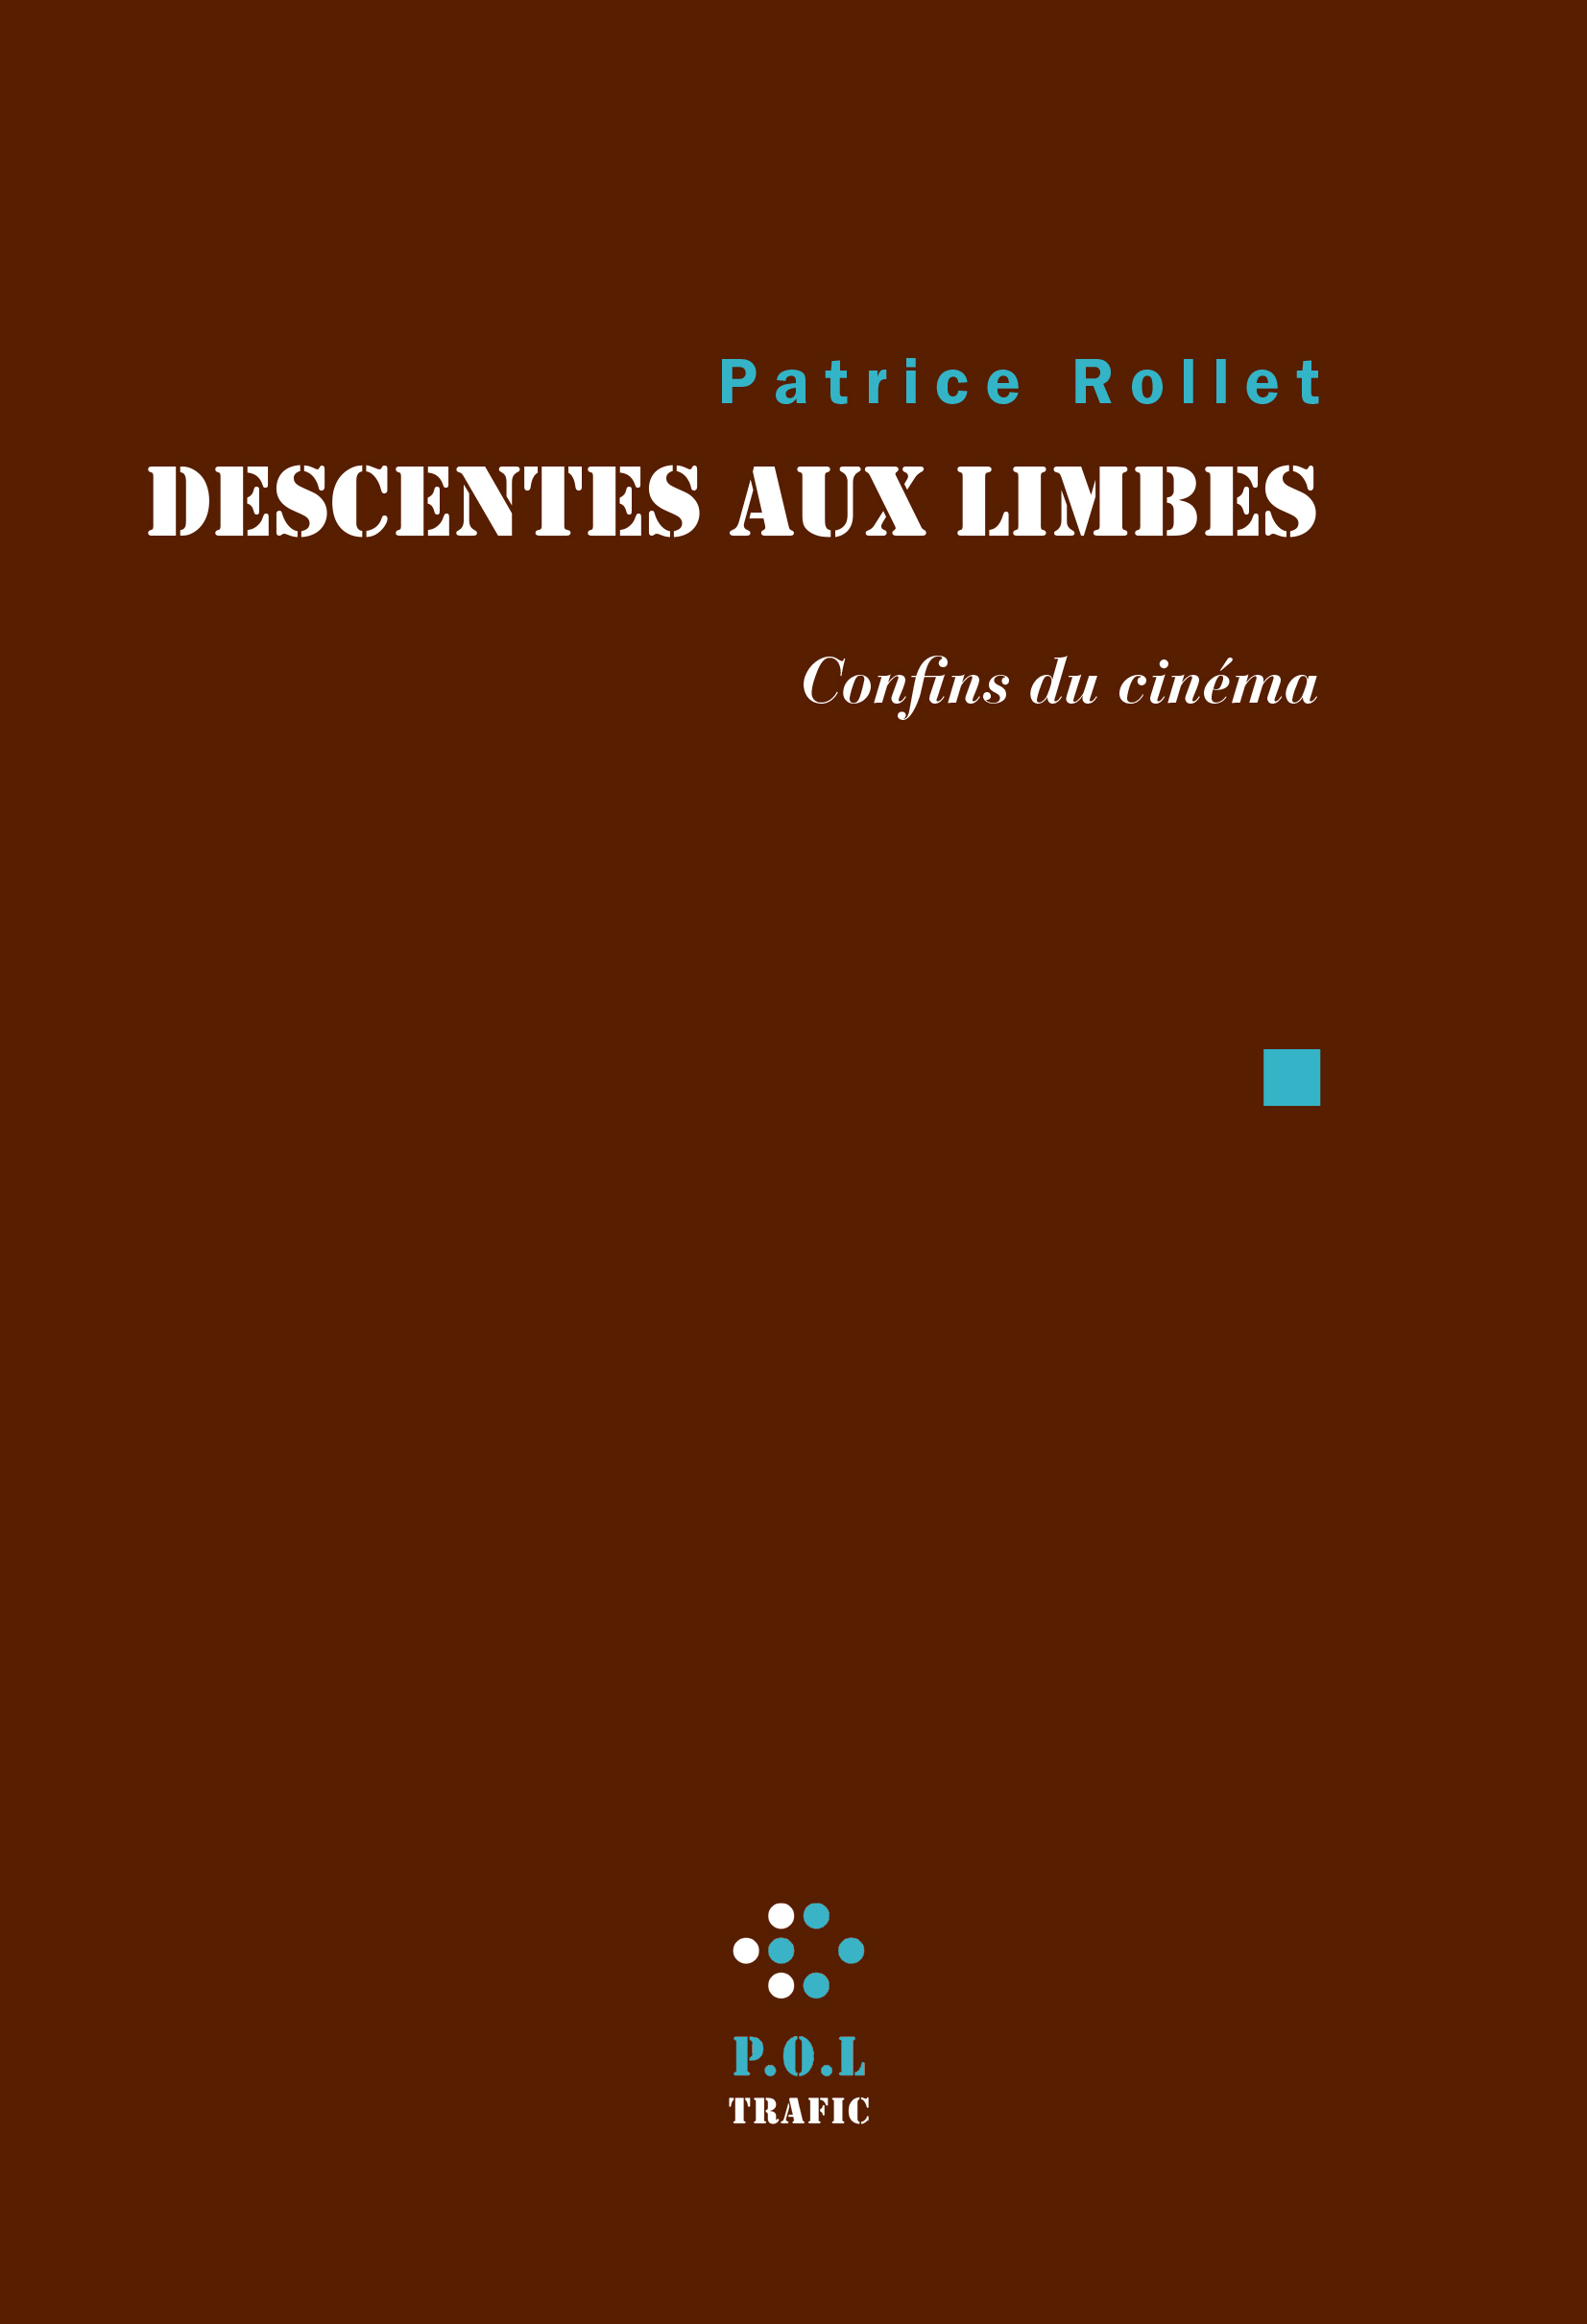 DESCENTES AUX LIMBES - CONFINS DU CINEMA